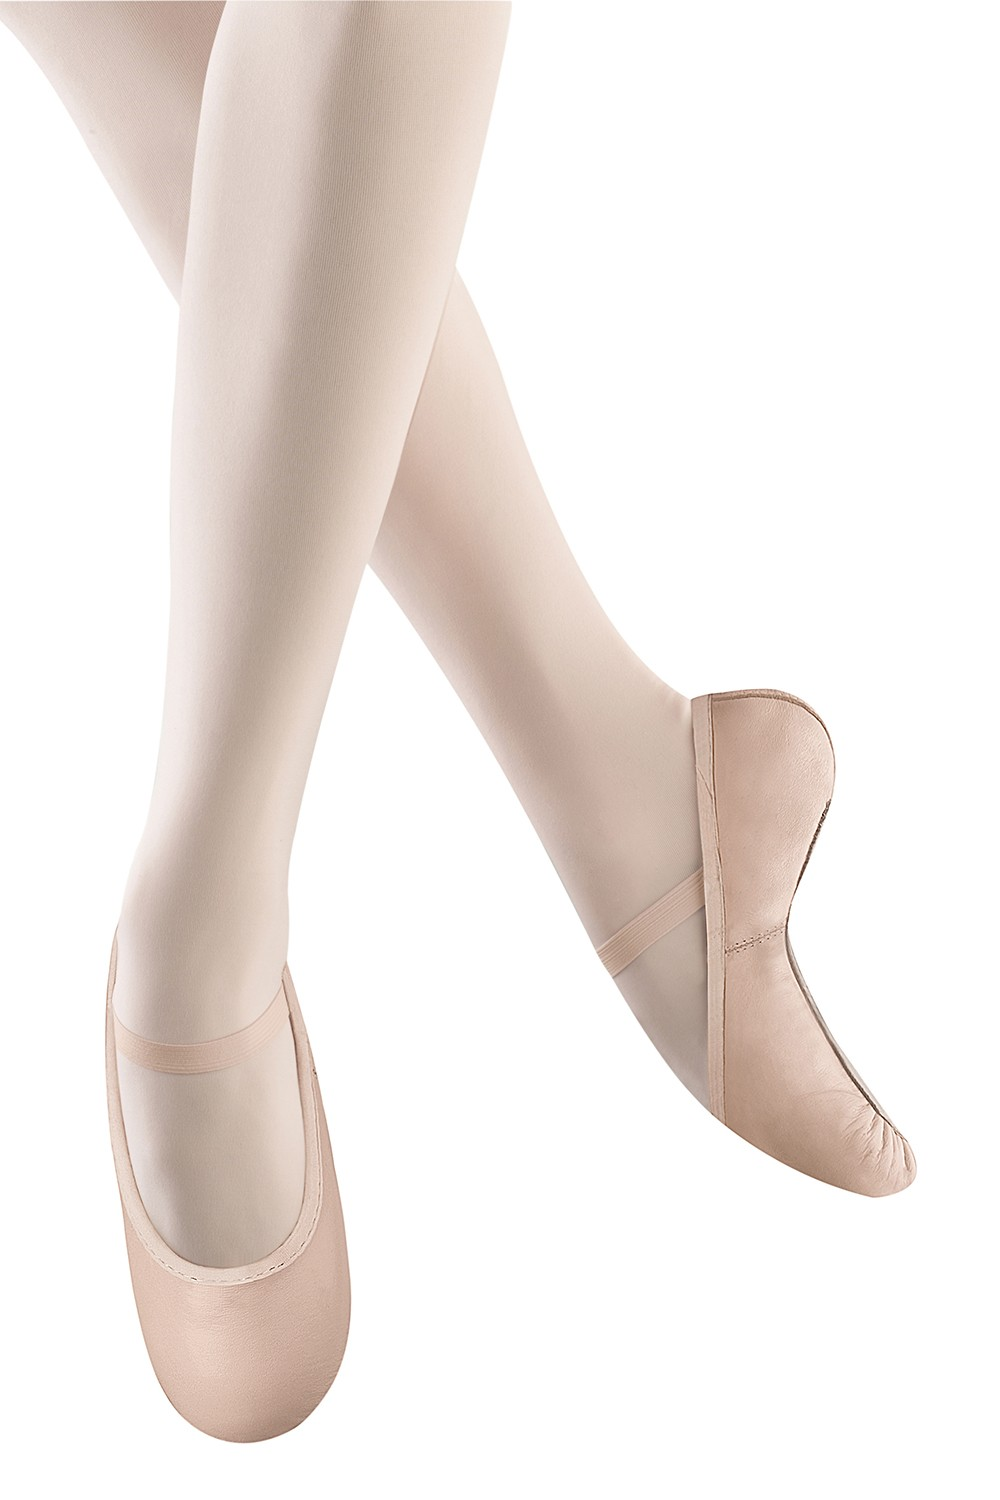 Belle - Niñas Girl's Ballet Shoes